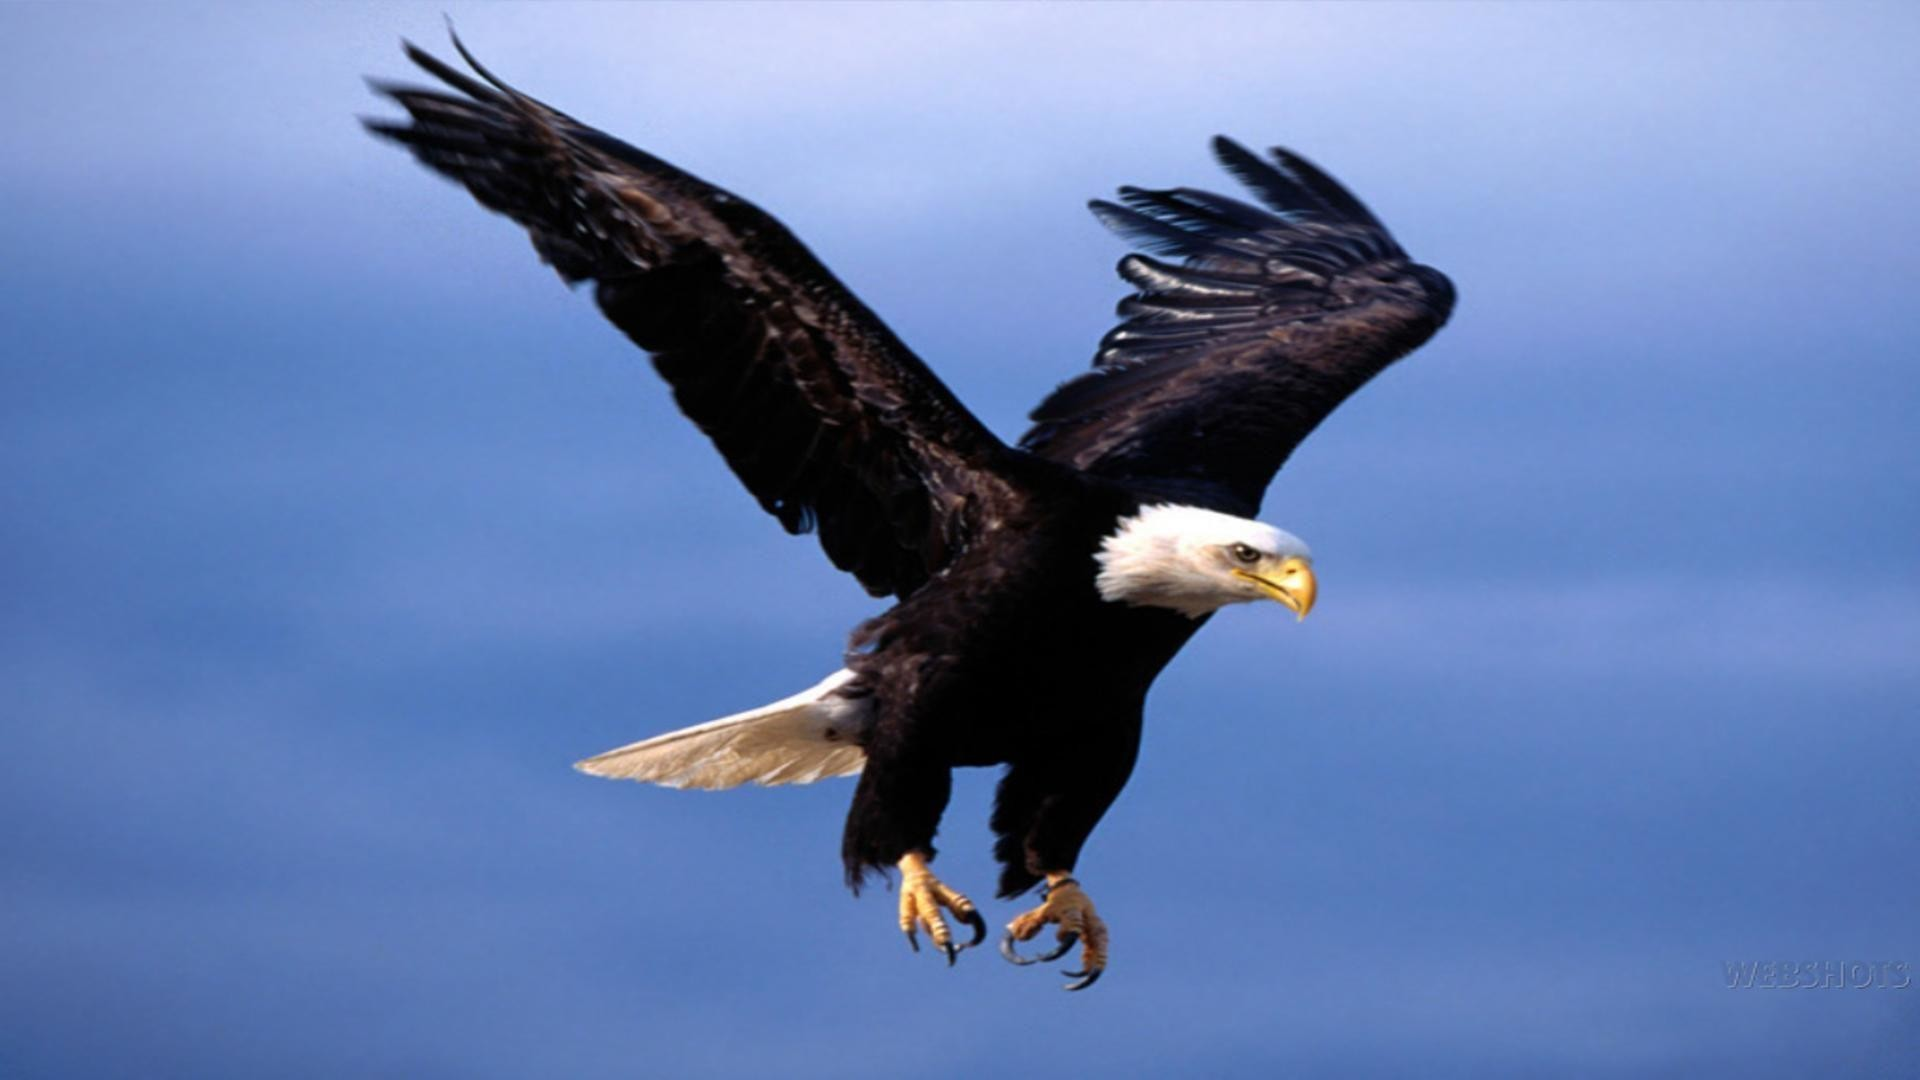 Flying eagle wallpapers 65 background pictures 1920x1080 flying eagle wallpaper free desktop background free wallpaper image altavistaventures Gallery